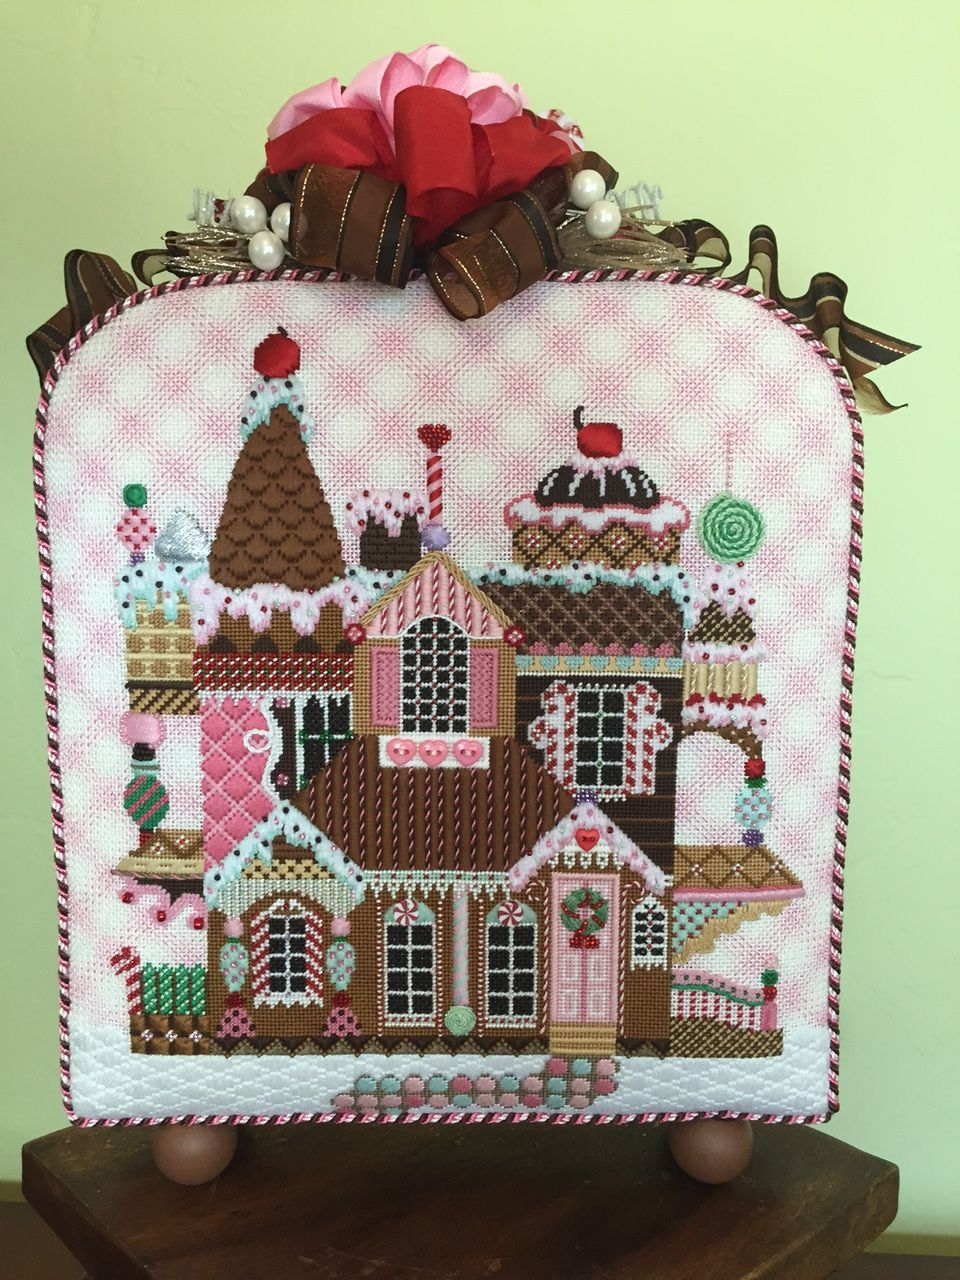 Gingerbread house by Shelly Tribbey. Stitch guide by the best: Susan Portra. One of my favorites. Elegant whimsey. Fabulous finishing by Marlene's Custom Pillows in SF.